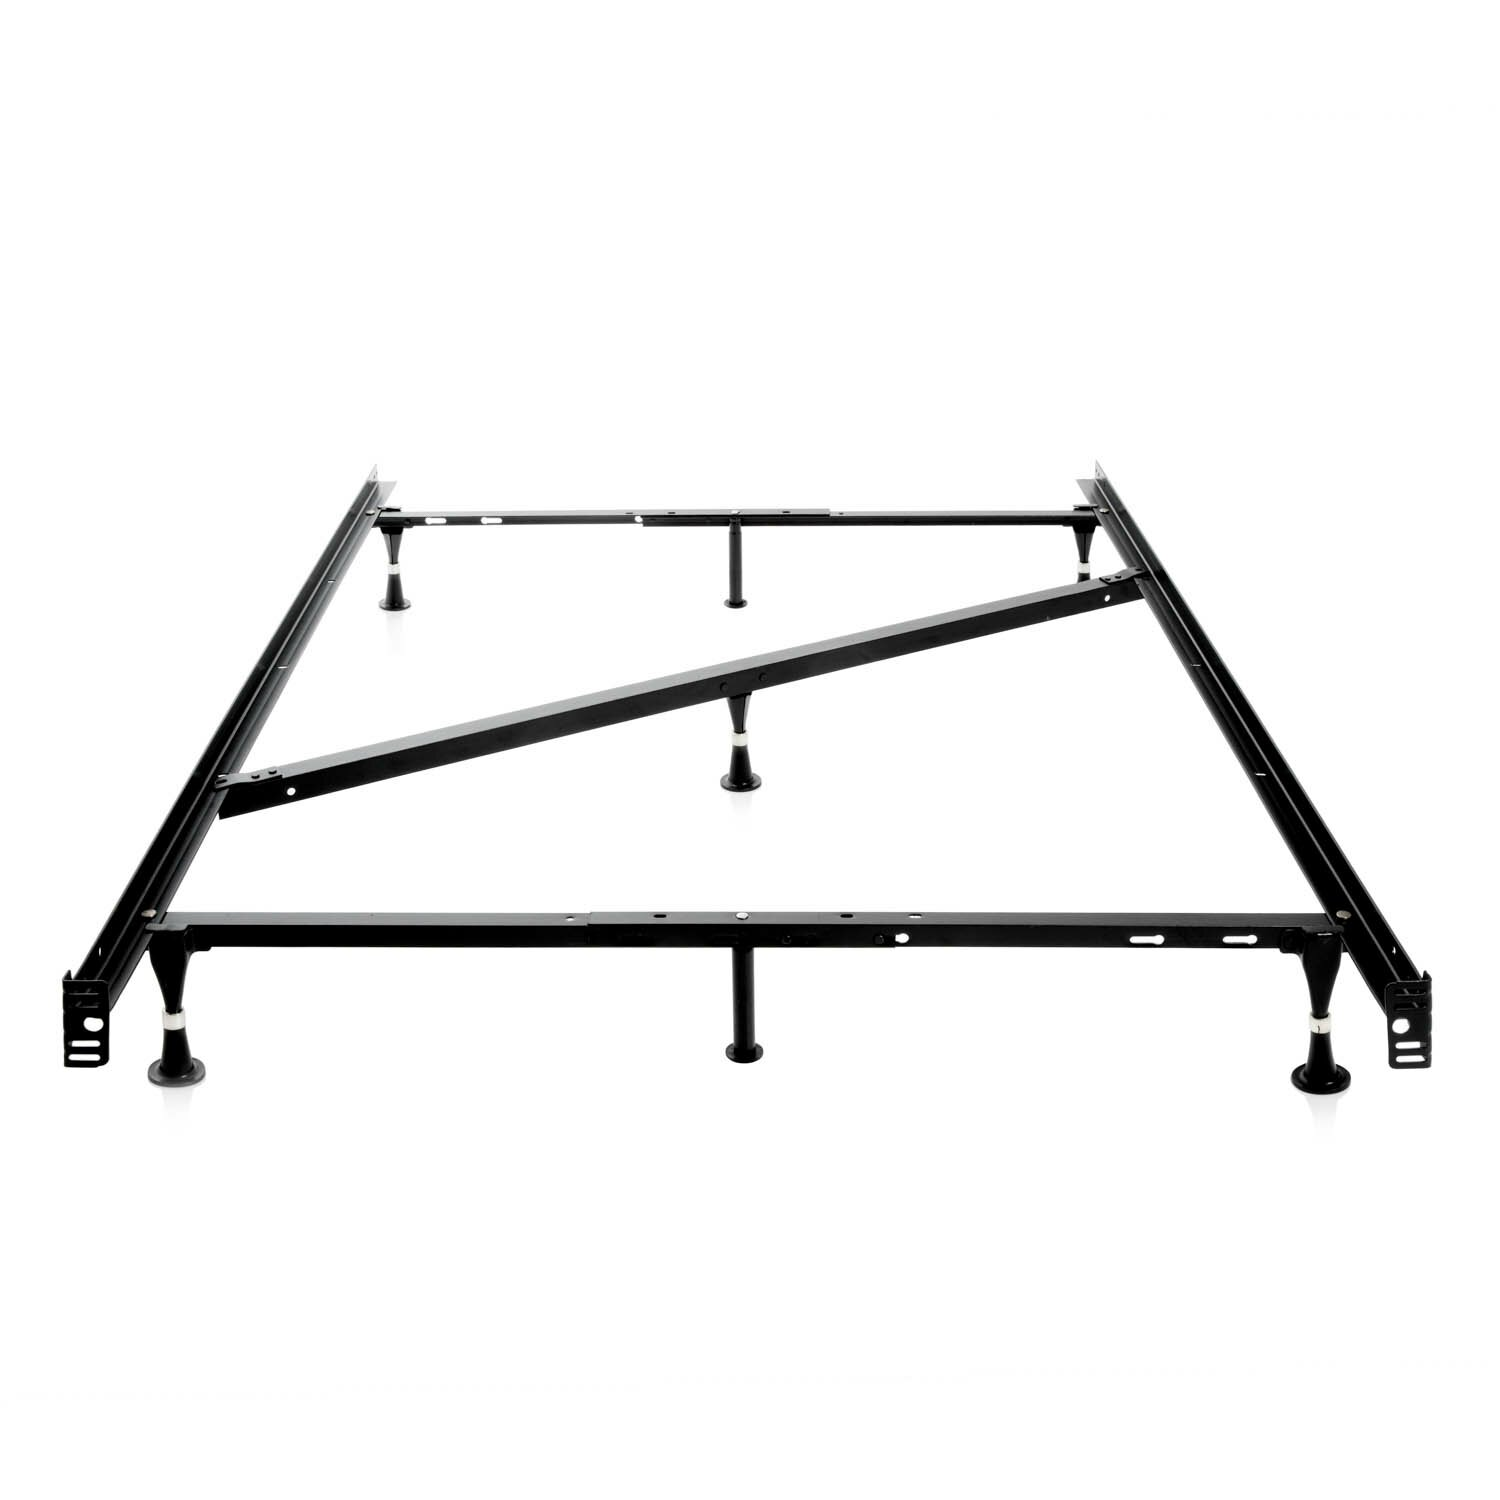 Malouf 7 Leg Adjustable Metal Bed Frame With Center